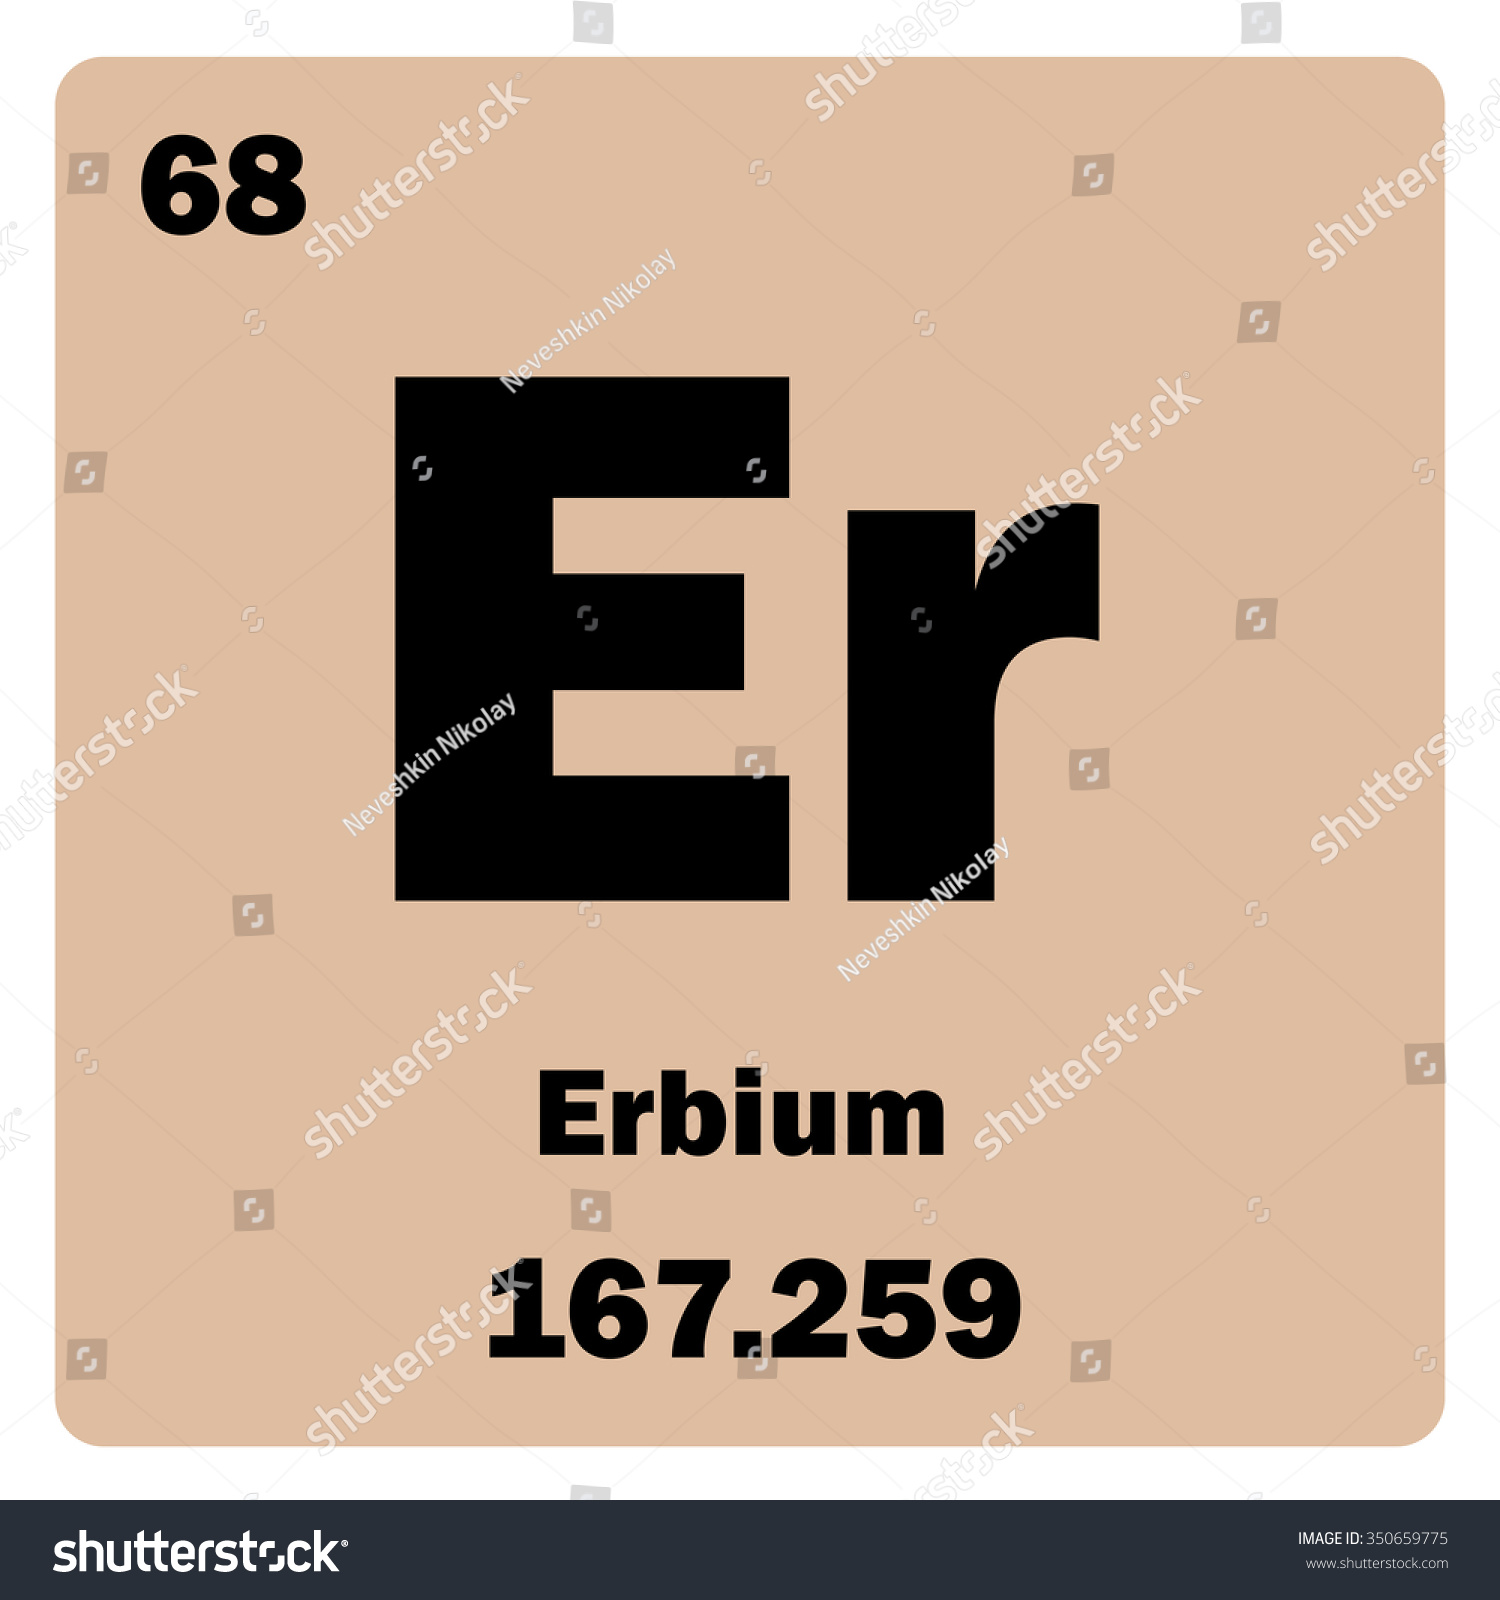 Erbium chemical element periodic table idef0 visio arrow clip art beer periodic table chemical element north american map with states stock vector vector illustration illustration shows a chemical element erbium group of gamestrikefo Image collections